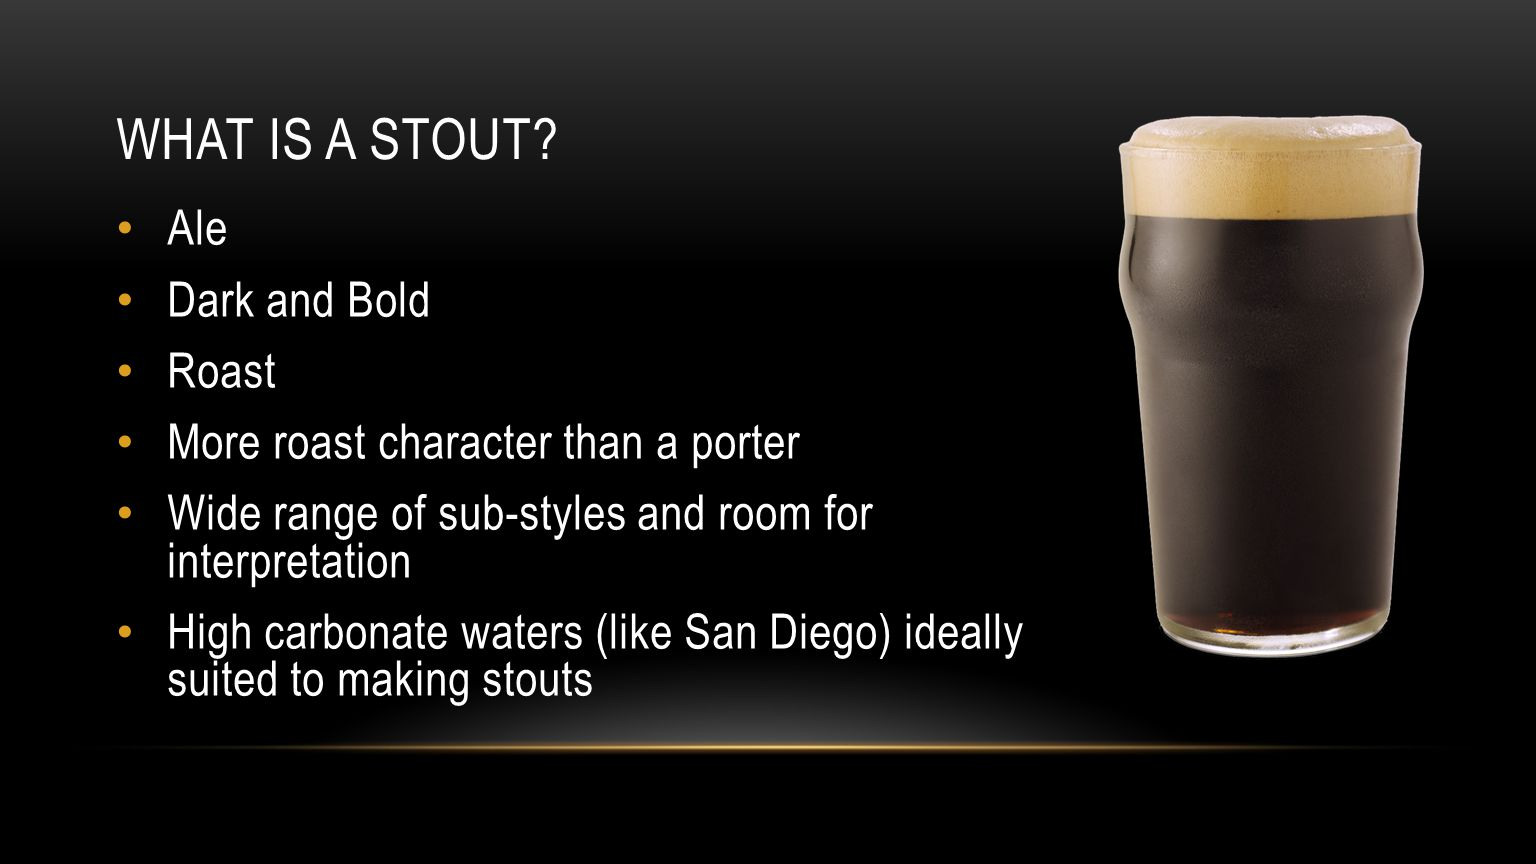 WHAT IS A STOUT? Ale Dark and Bold Roast More roast character than a porter Wide range of sub-styles and room for interpretation High carbonate waters